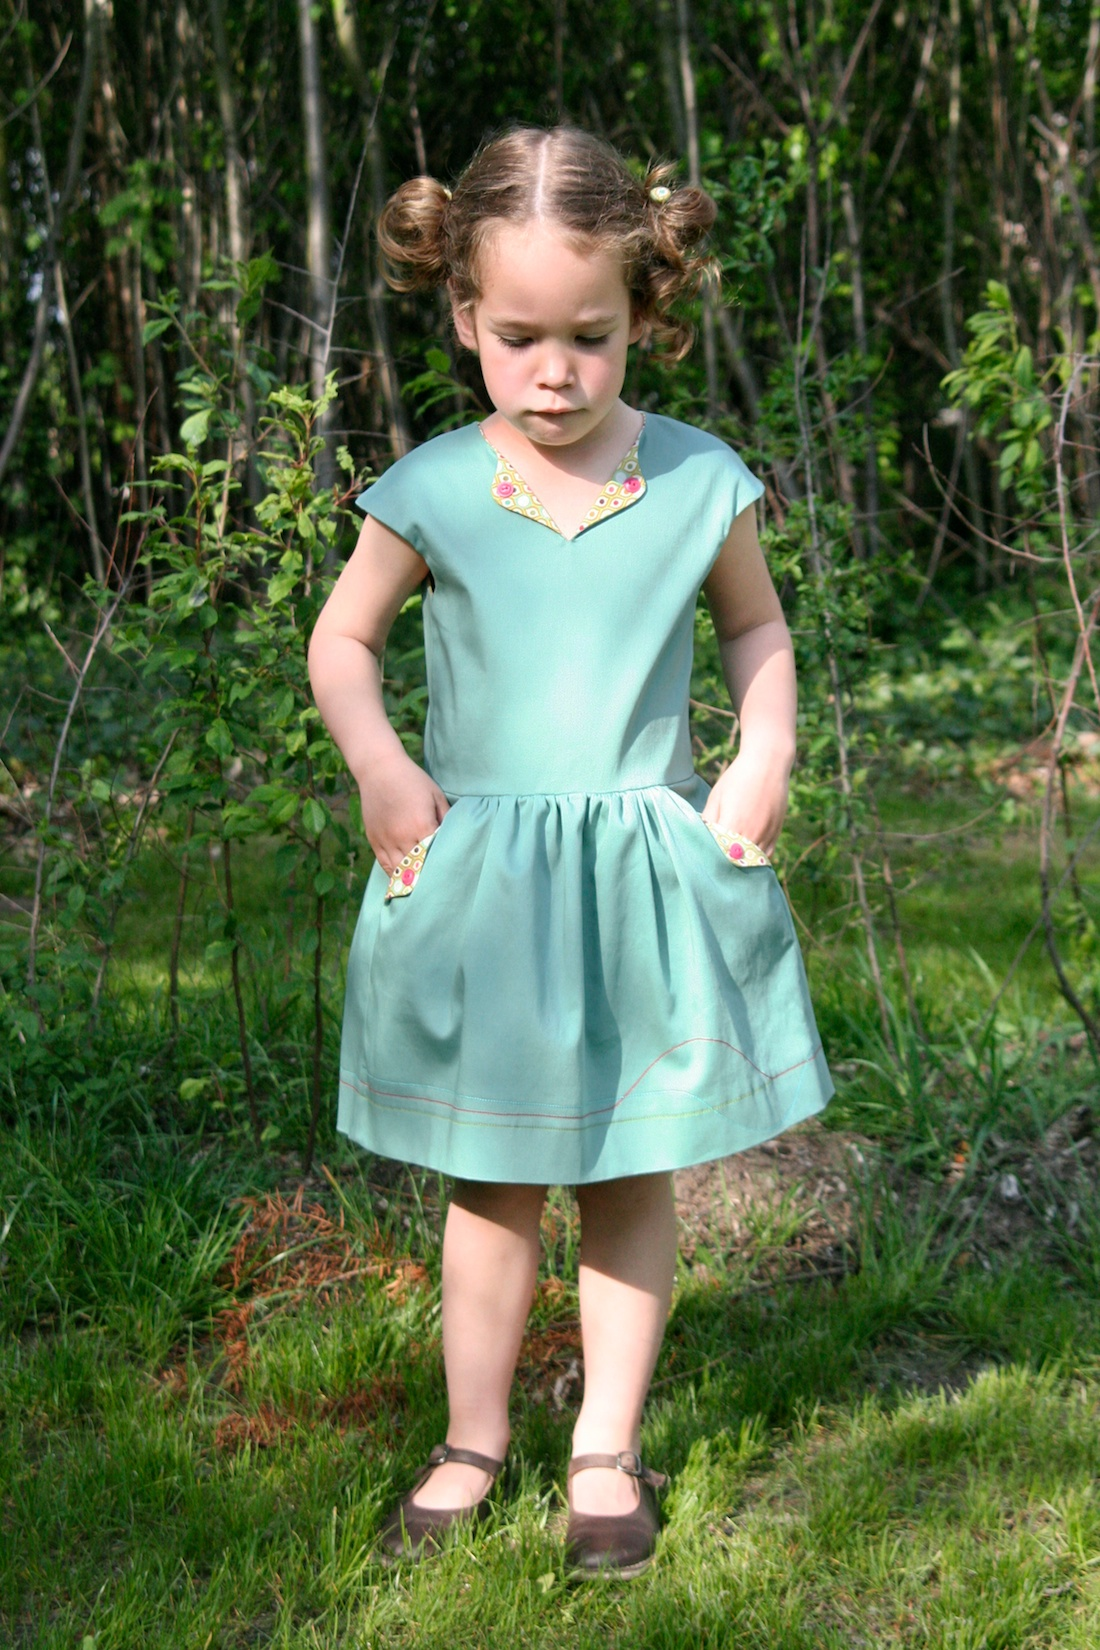 Compagnie-M_Lotta dress_leven met Liv 5